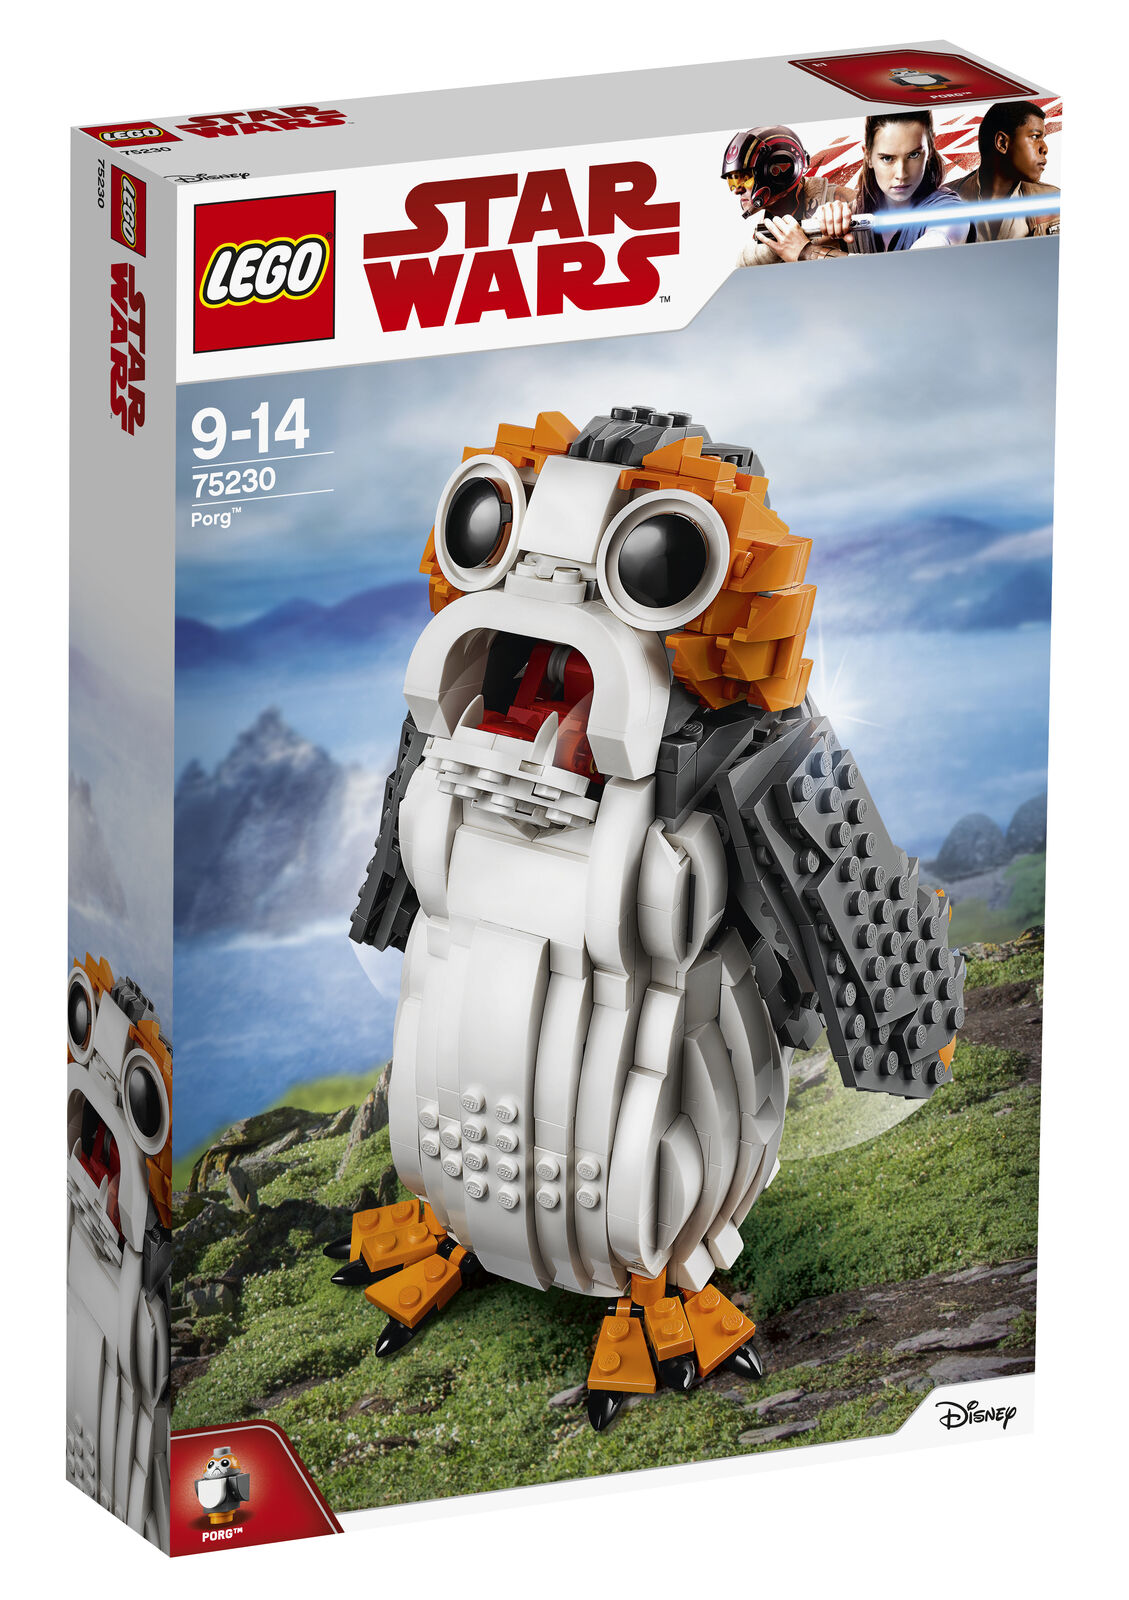 Lego Star Wars Porg (75230) Ucs Brand New Factory Sealed. Amazing Build Rrp